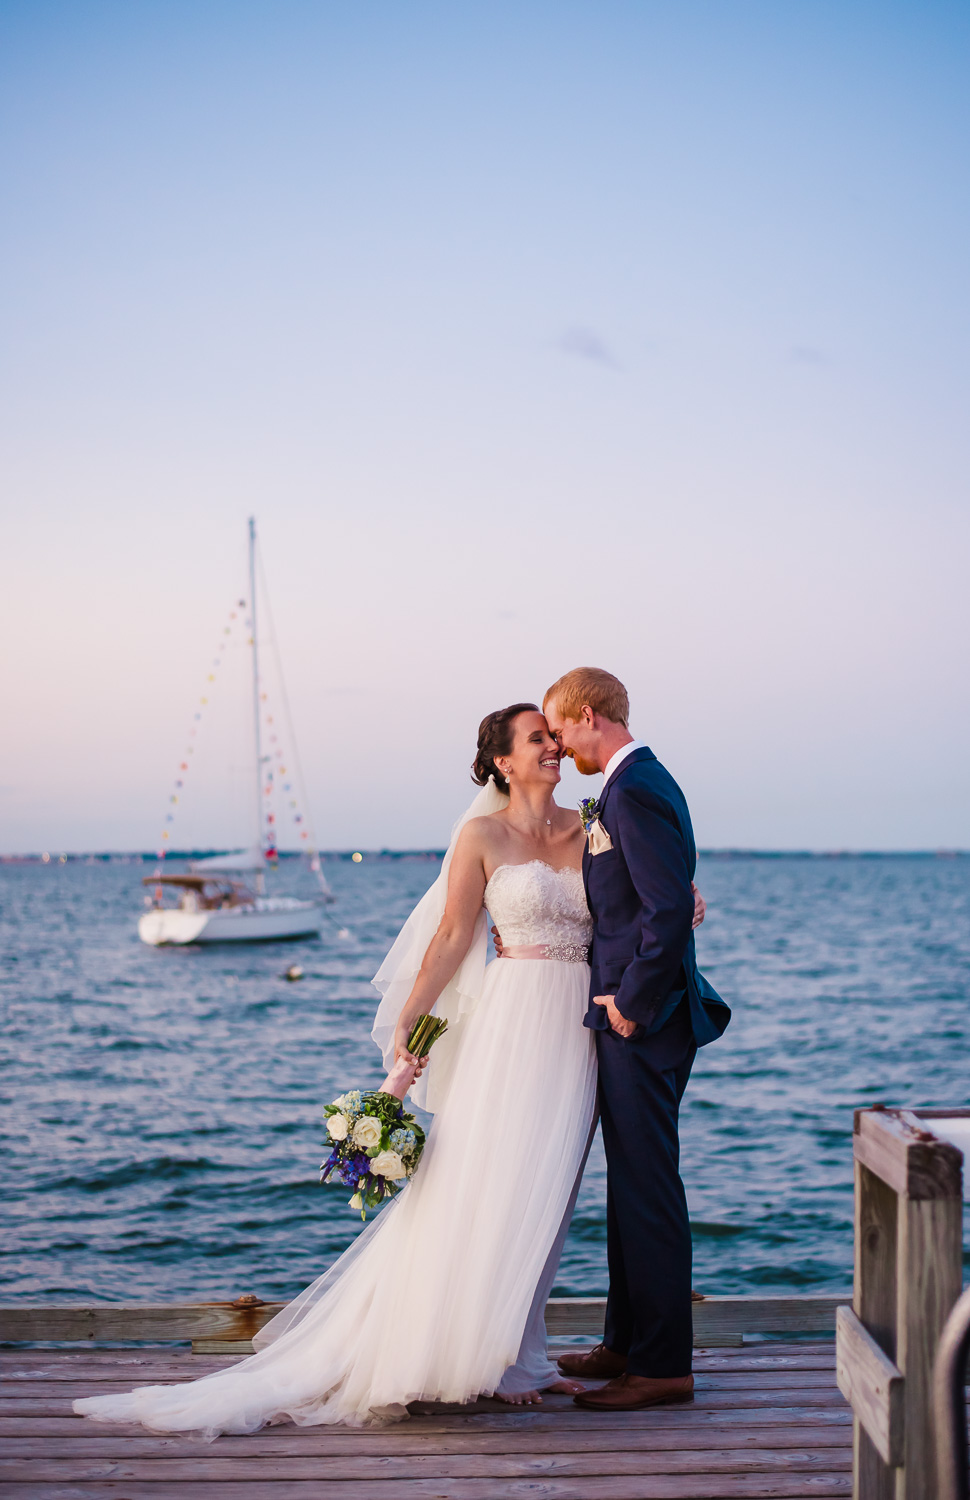 new mrs and mr stop to kiss on dock with honeymoon boat in background